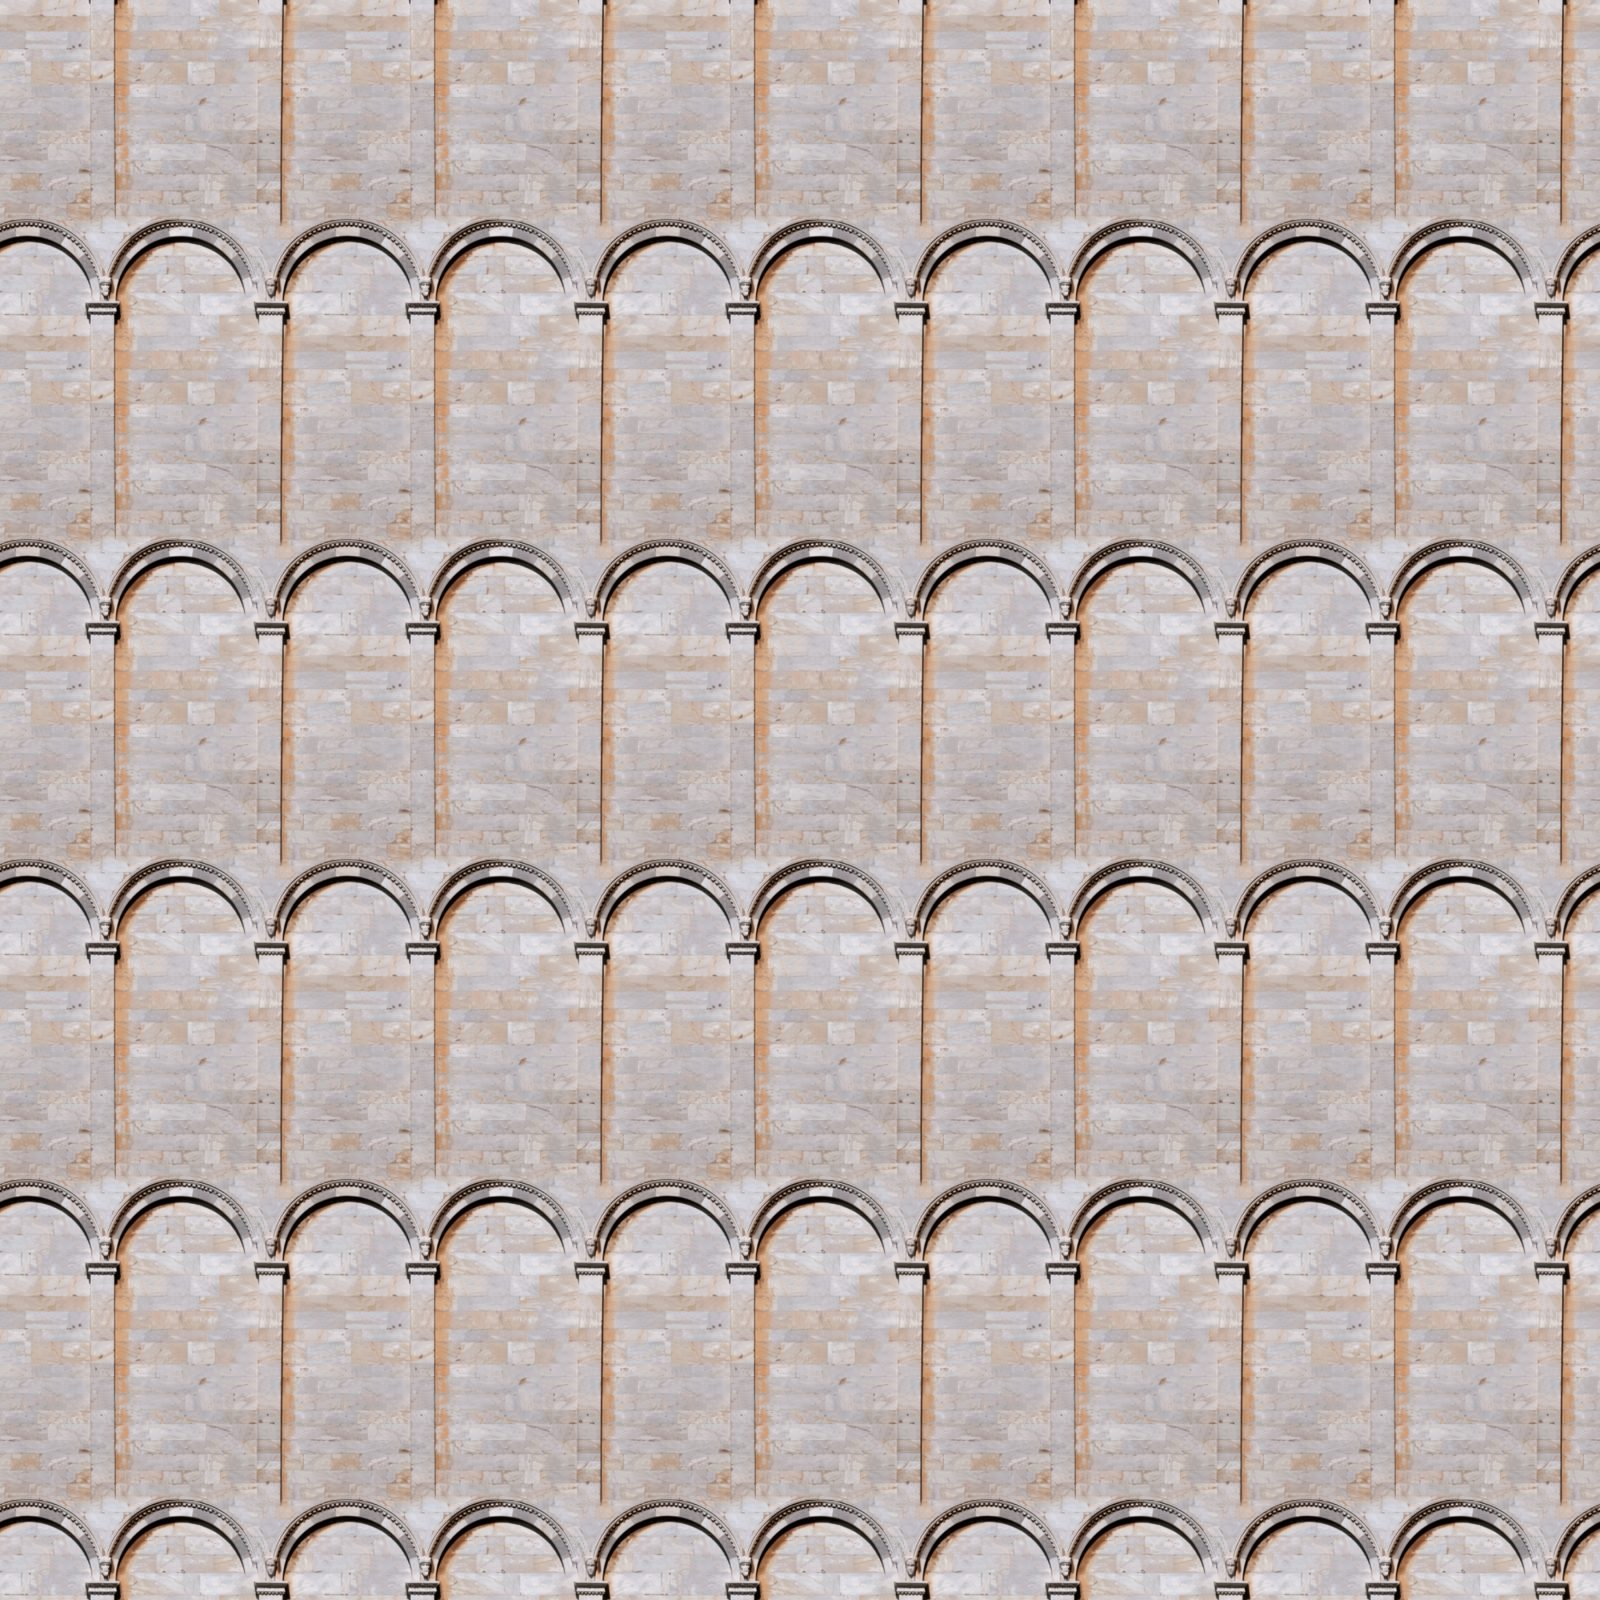 Stone Arches And Columns Wall Seamless Texture